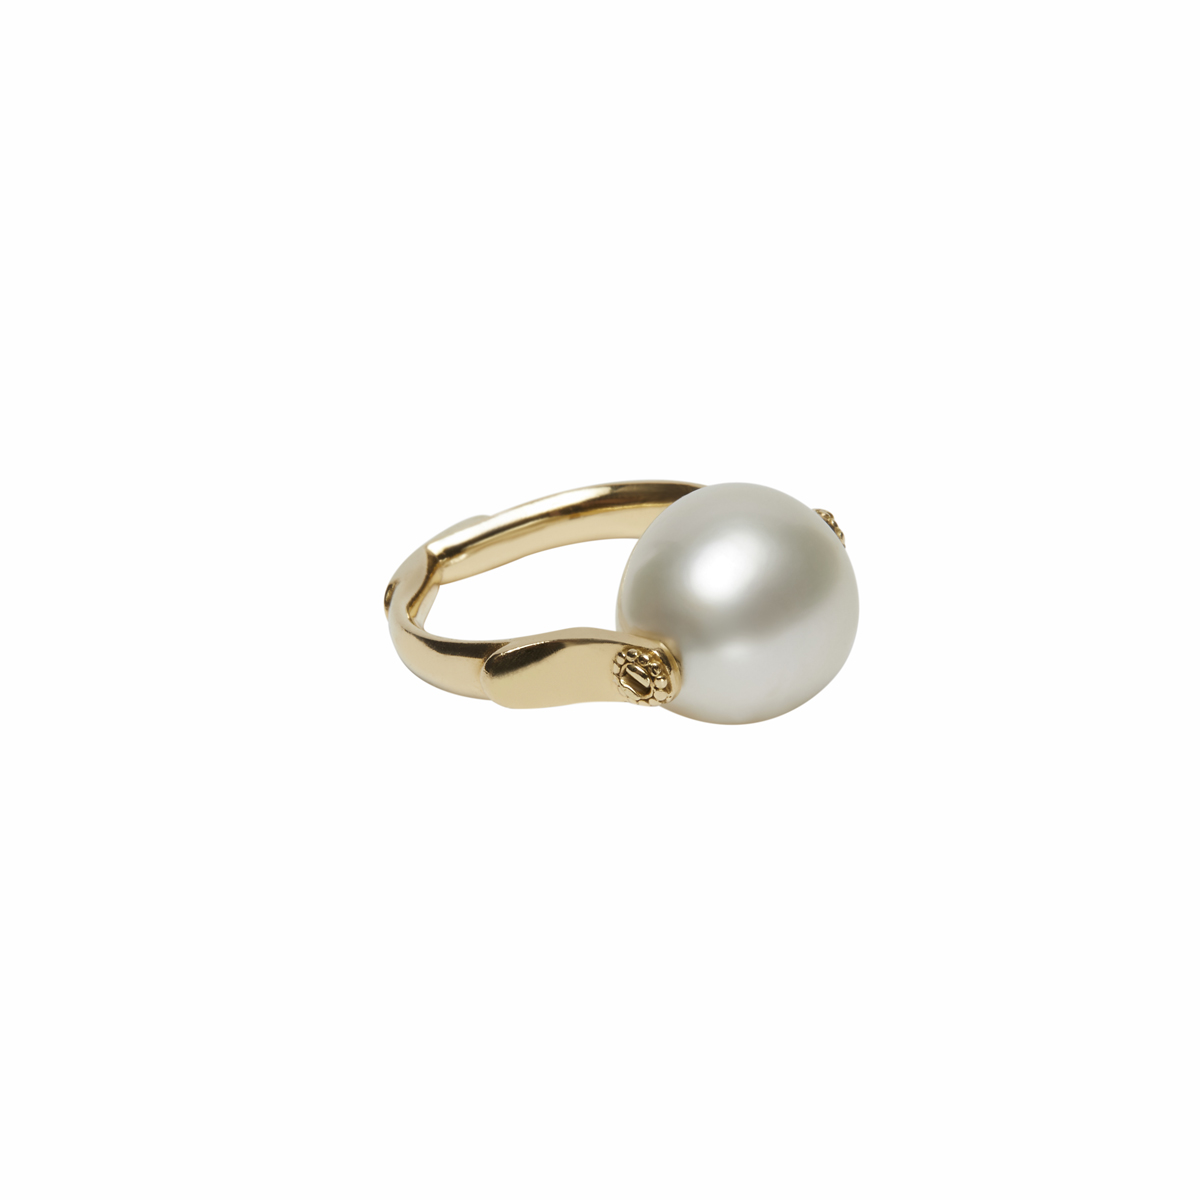 VGIJshop-03190408-pearl ring